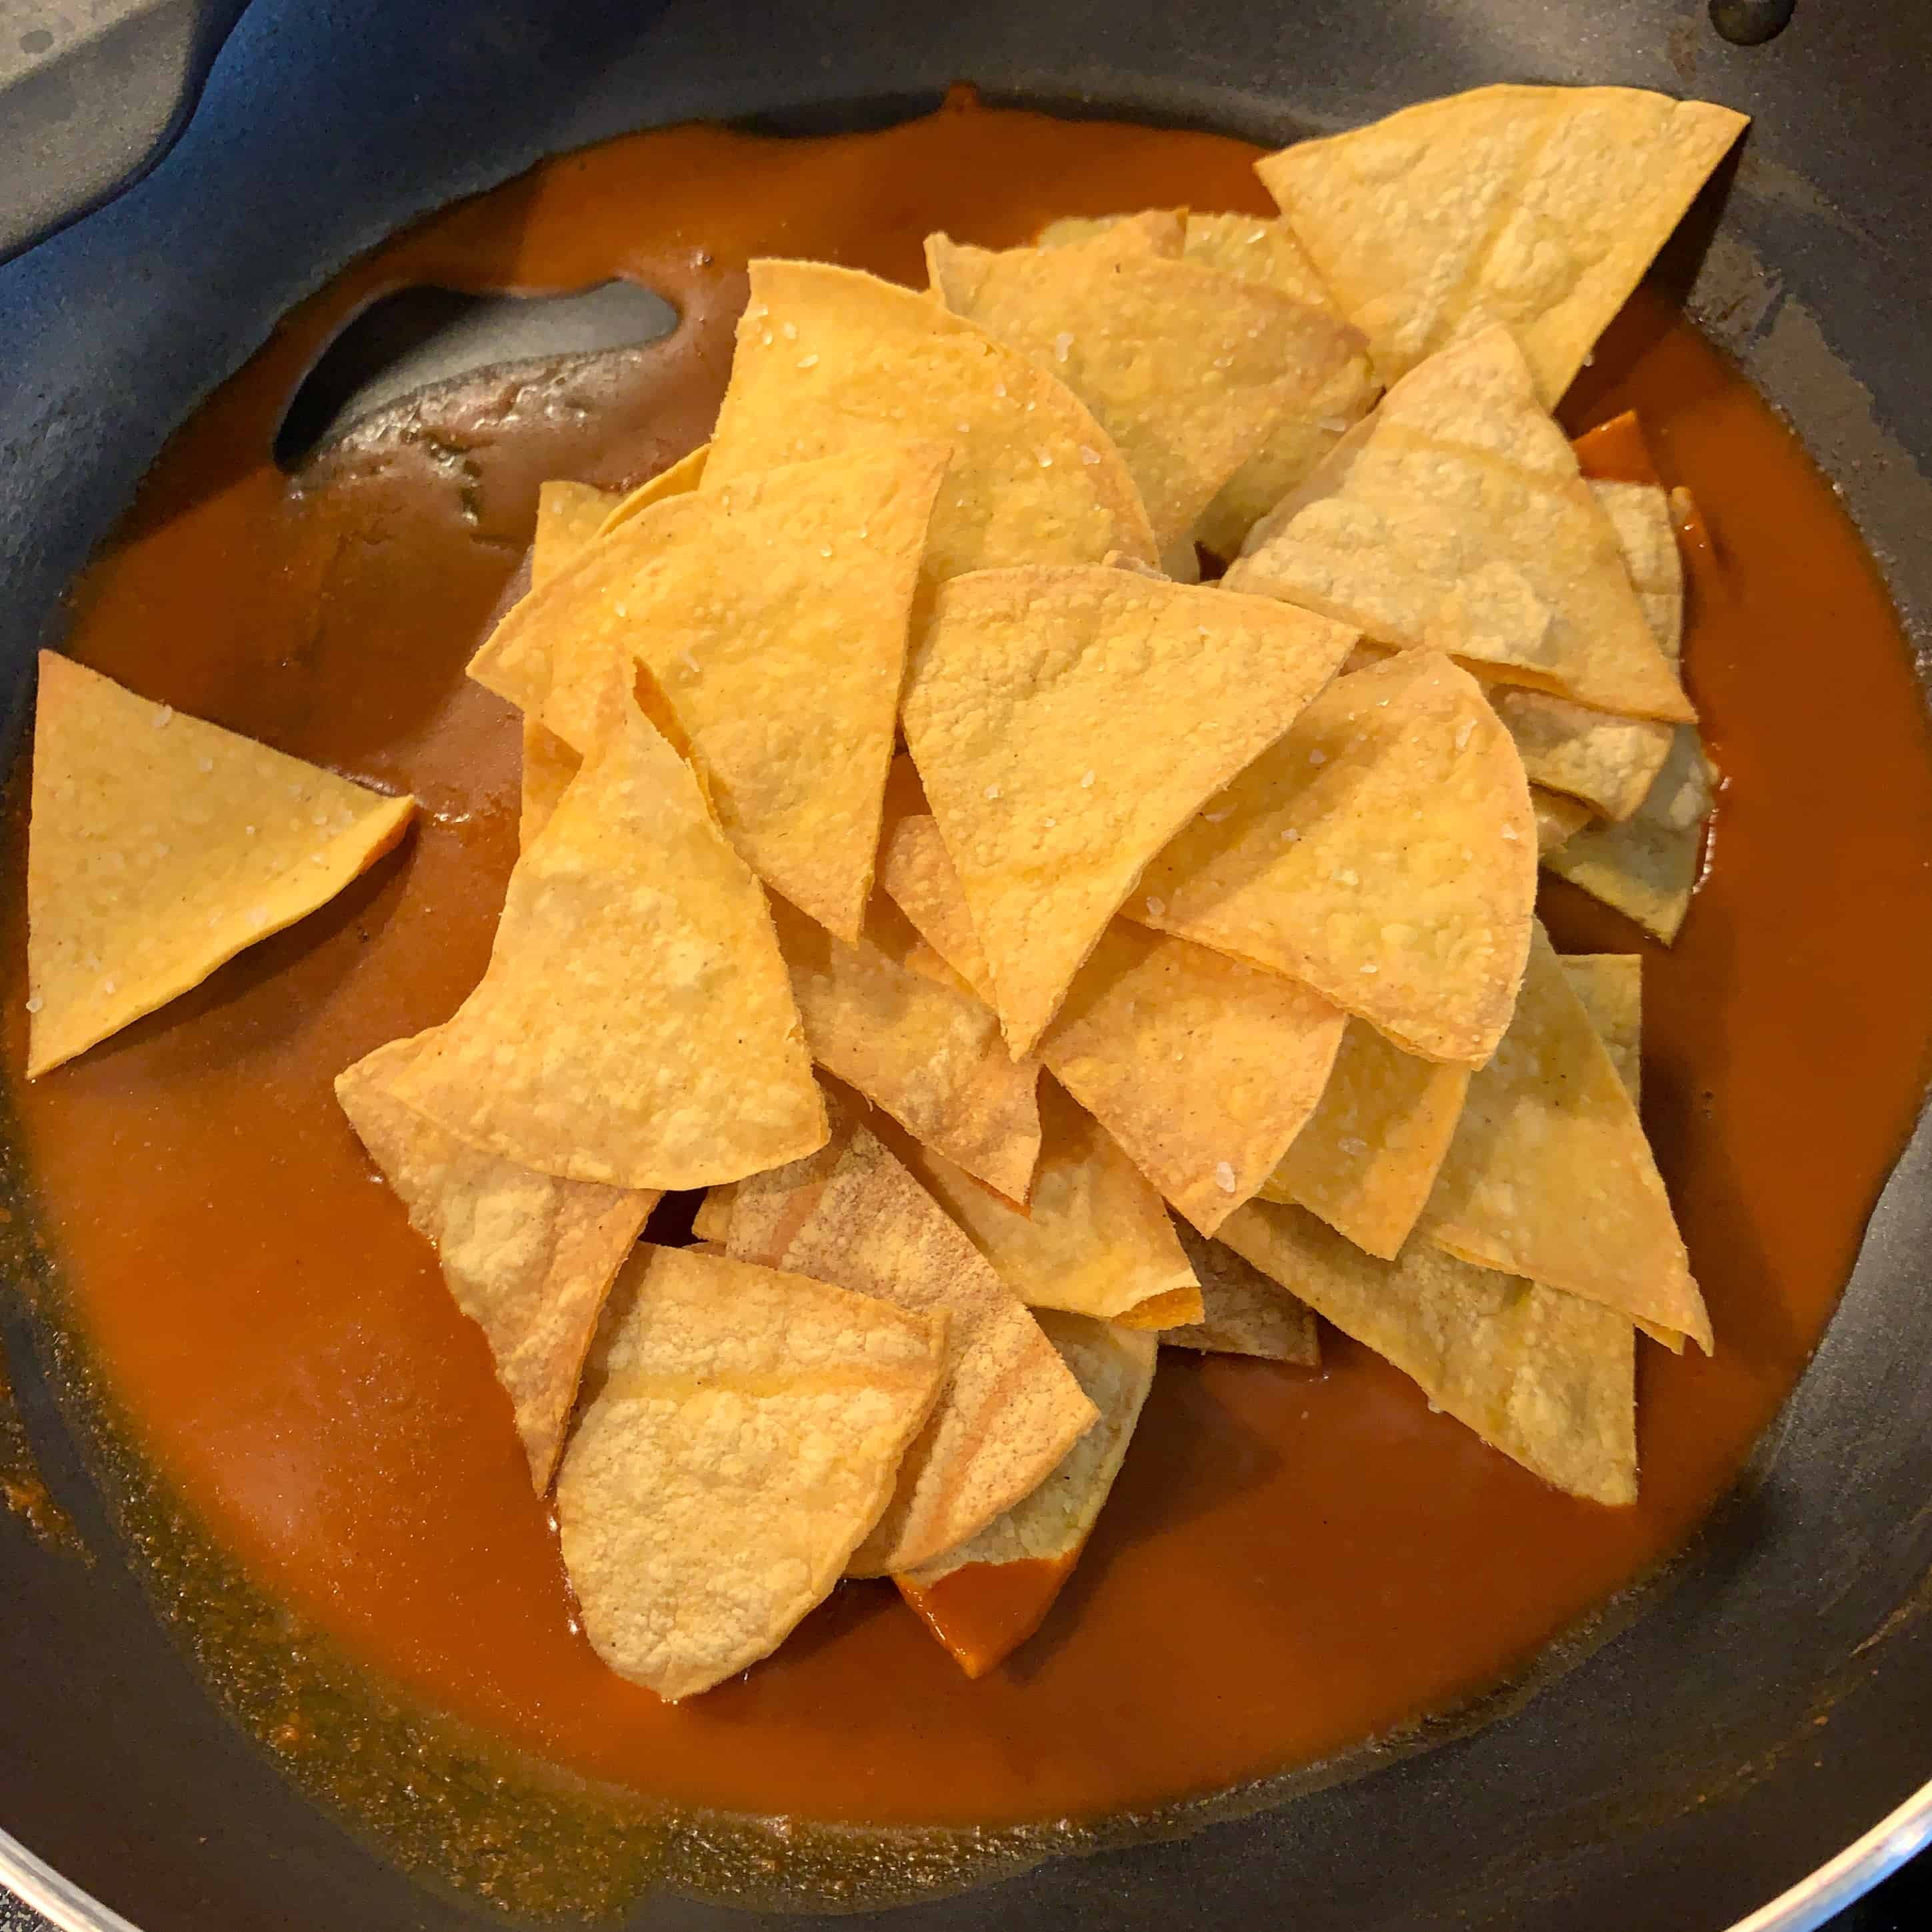 baked tortilla chips in enchilada sauce